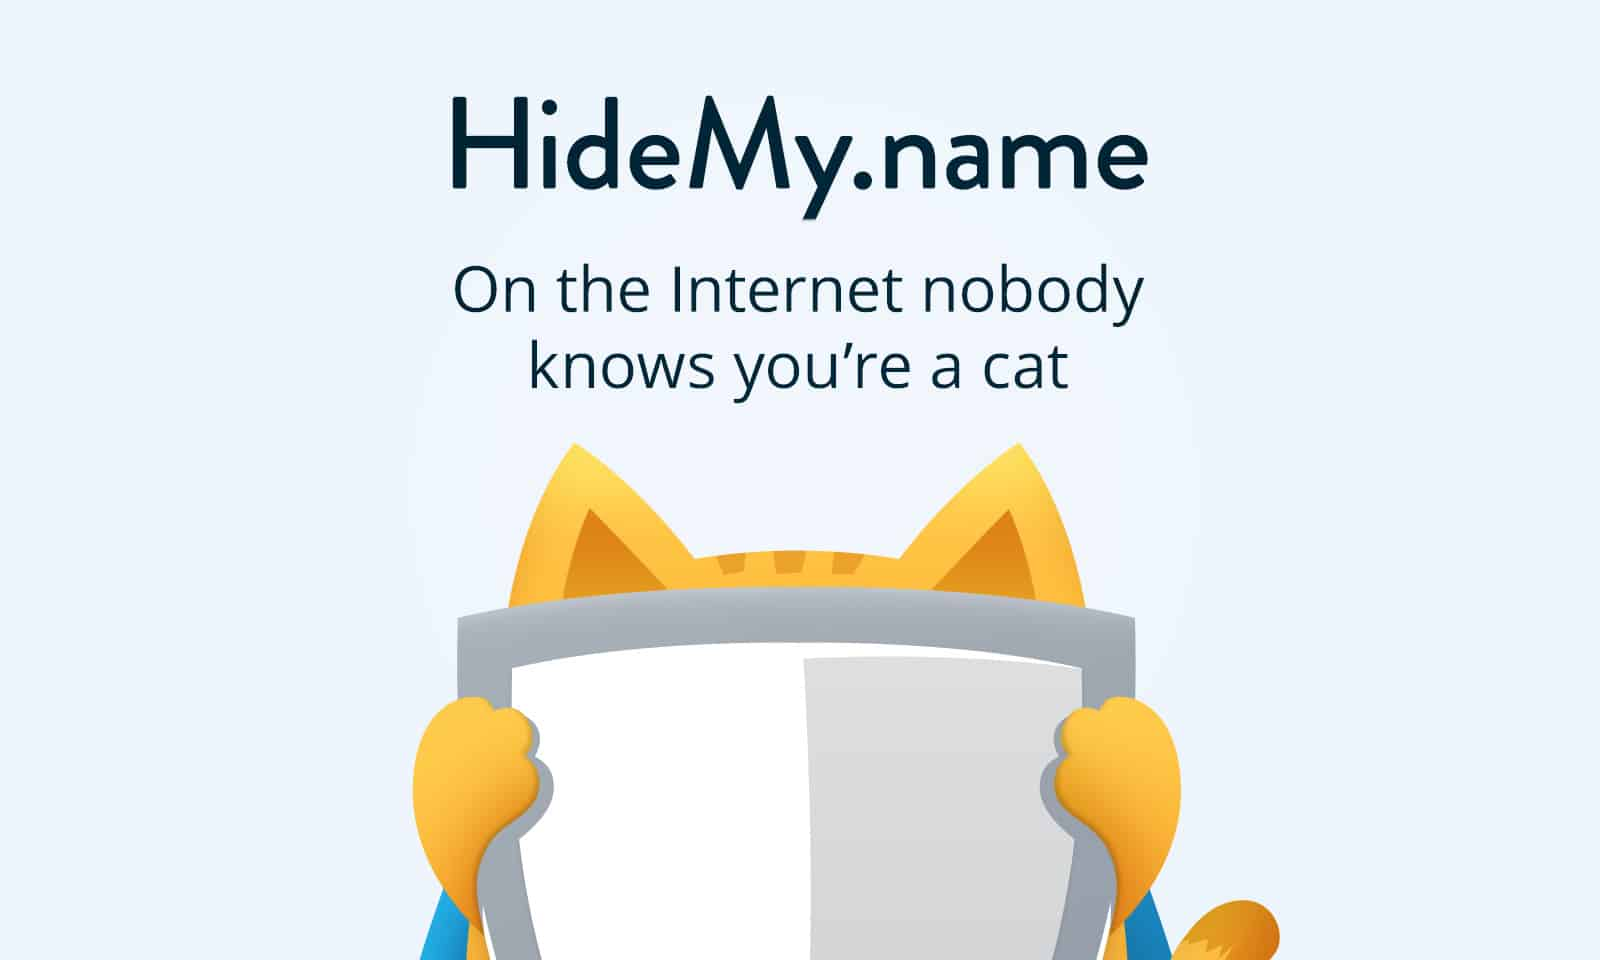 HideMy.name VPN can hide your deepest, darkest secrets.